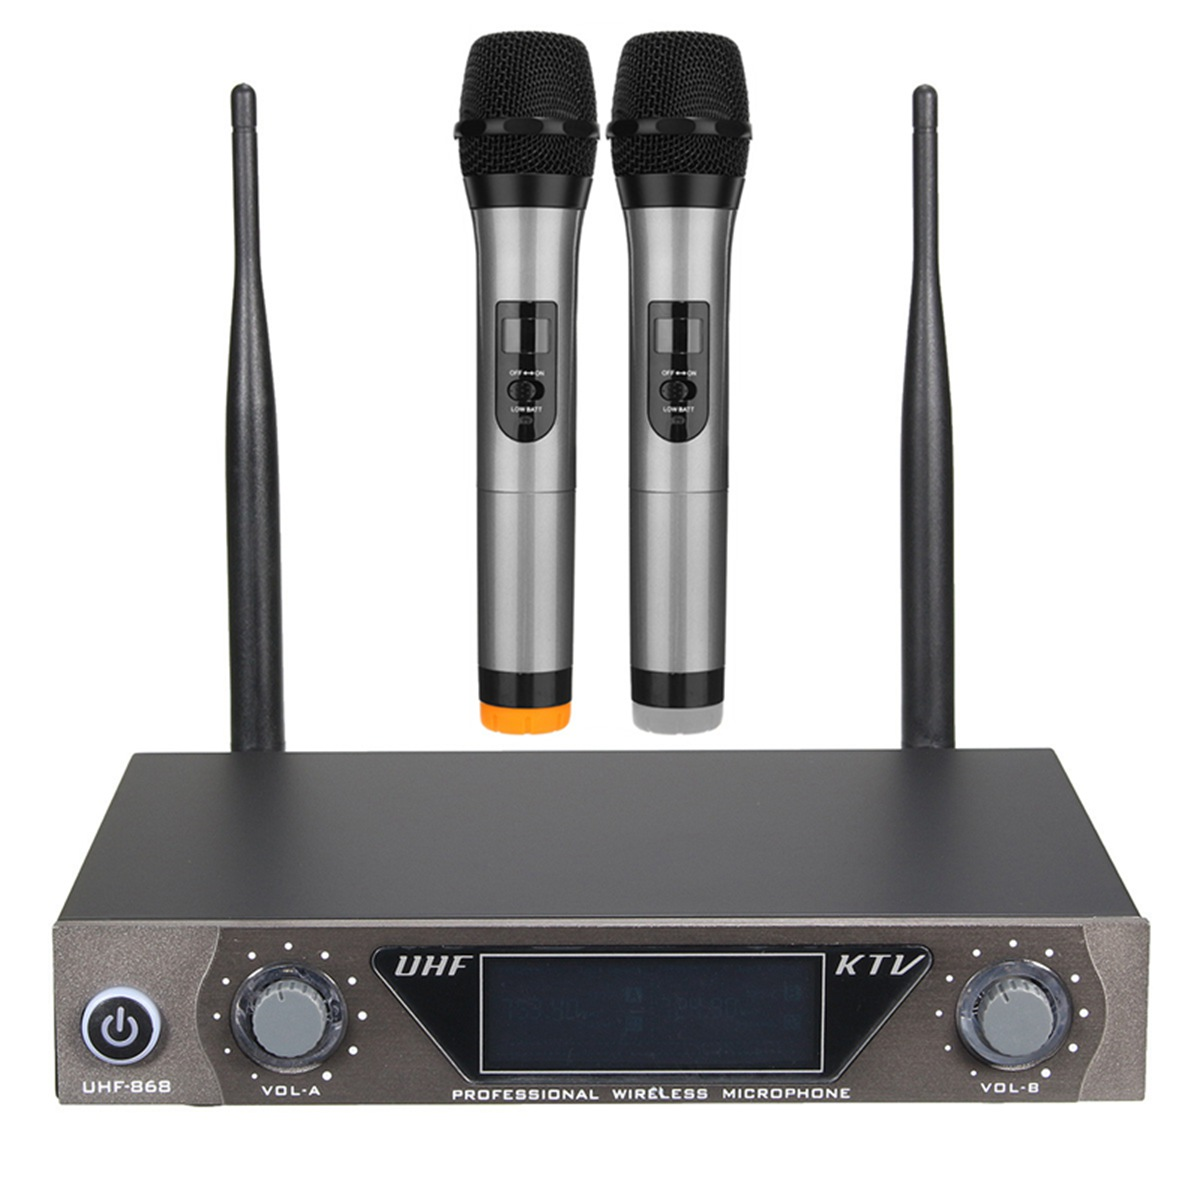 LEORY UHF Karaoke Wireless Microphone System With 2 Handheld Mic Dual Channel UHF Transmitter Microphone Systerm For KaraokeLEORY UHF Karaoke Wireless Microphone System With 2 Handheld Mic Dual Channel UHF Transmitter Microphone Systerm For Karaoke